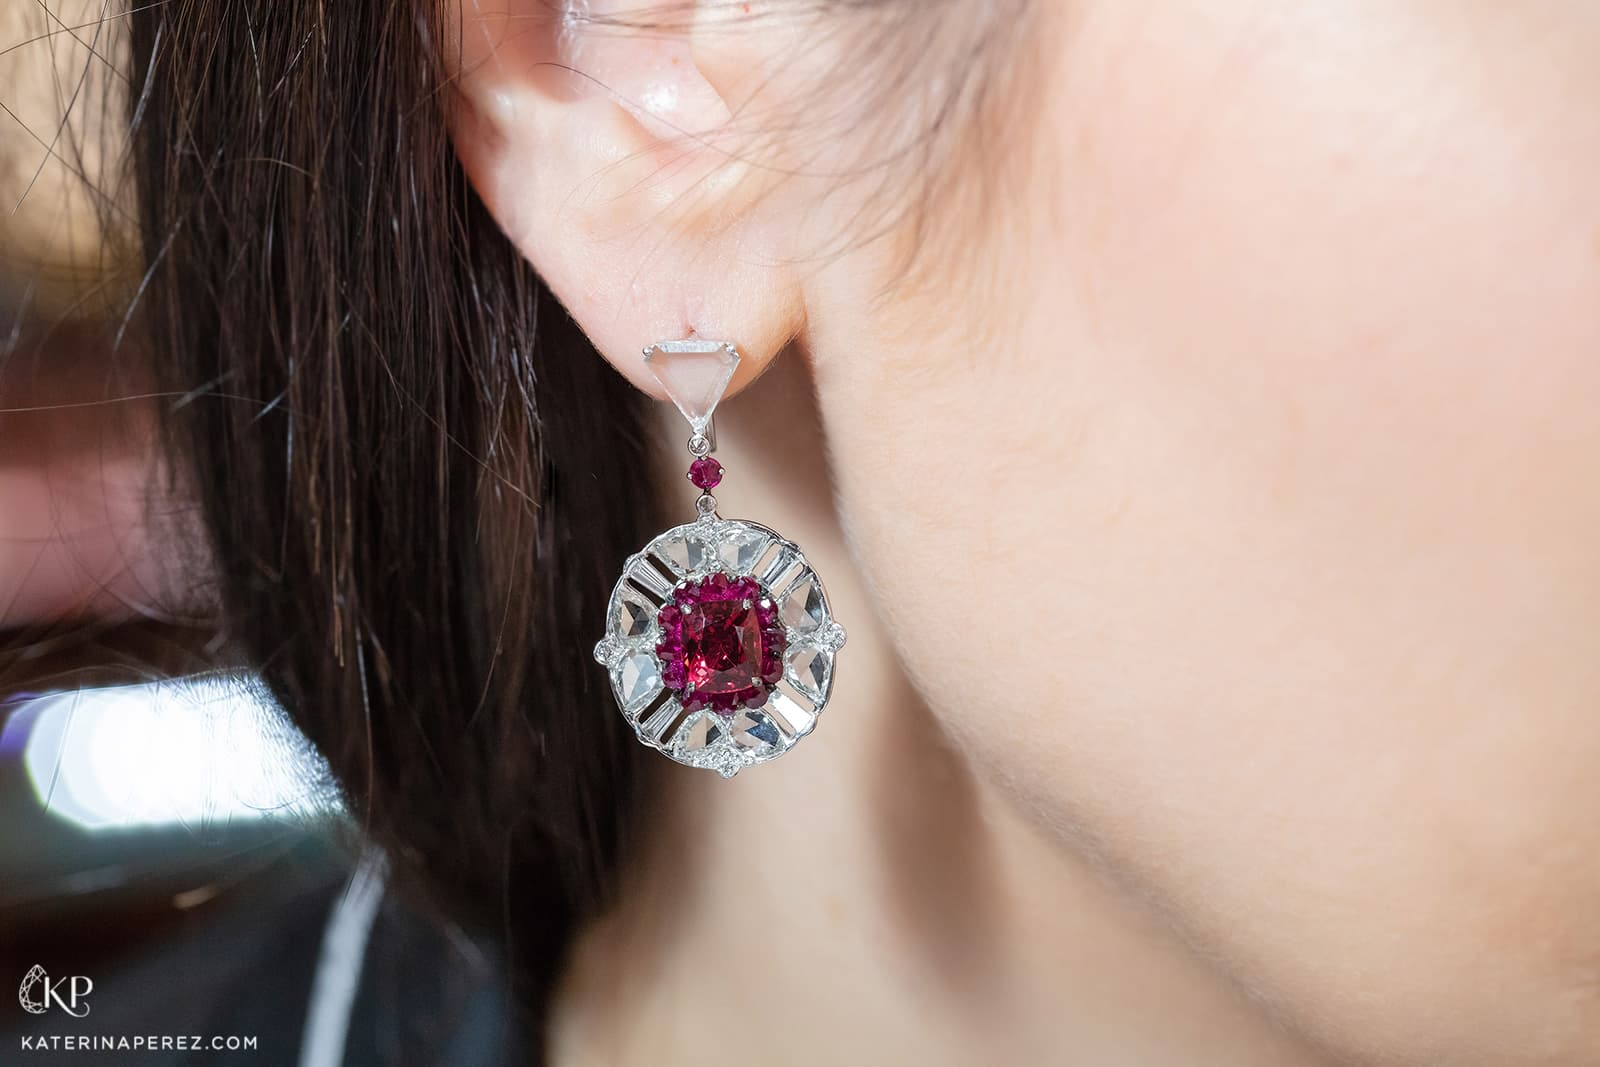 VAK earrings with non-treated Burmese spinel, non-treated rubies, and rose, baguette and brilliant cut diamonds